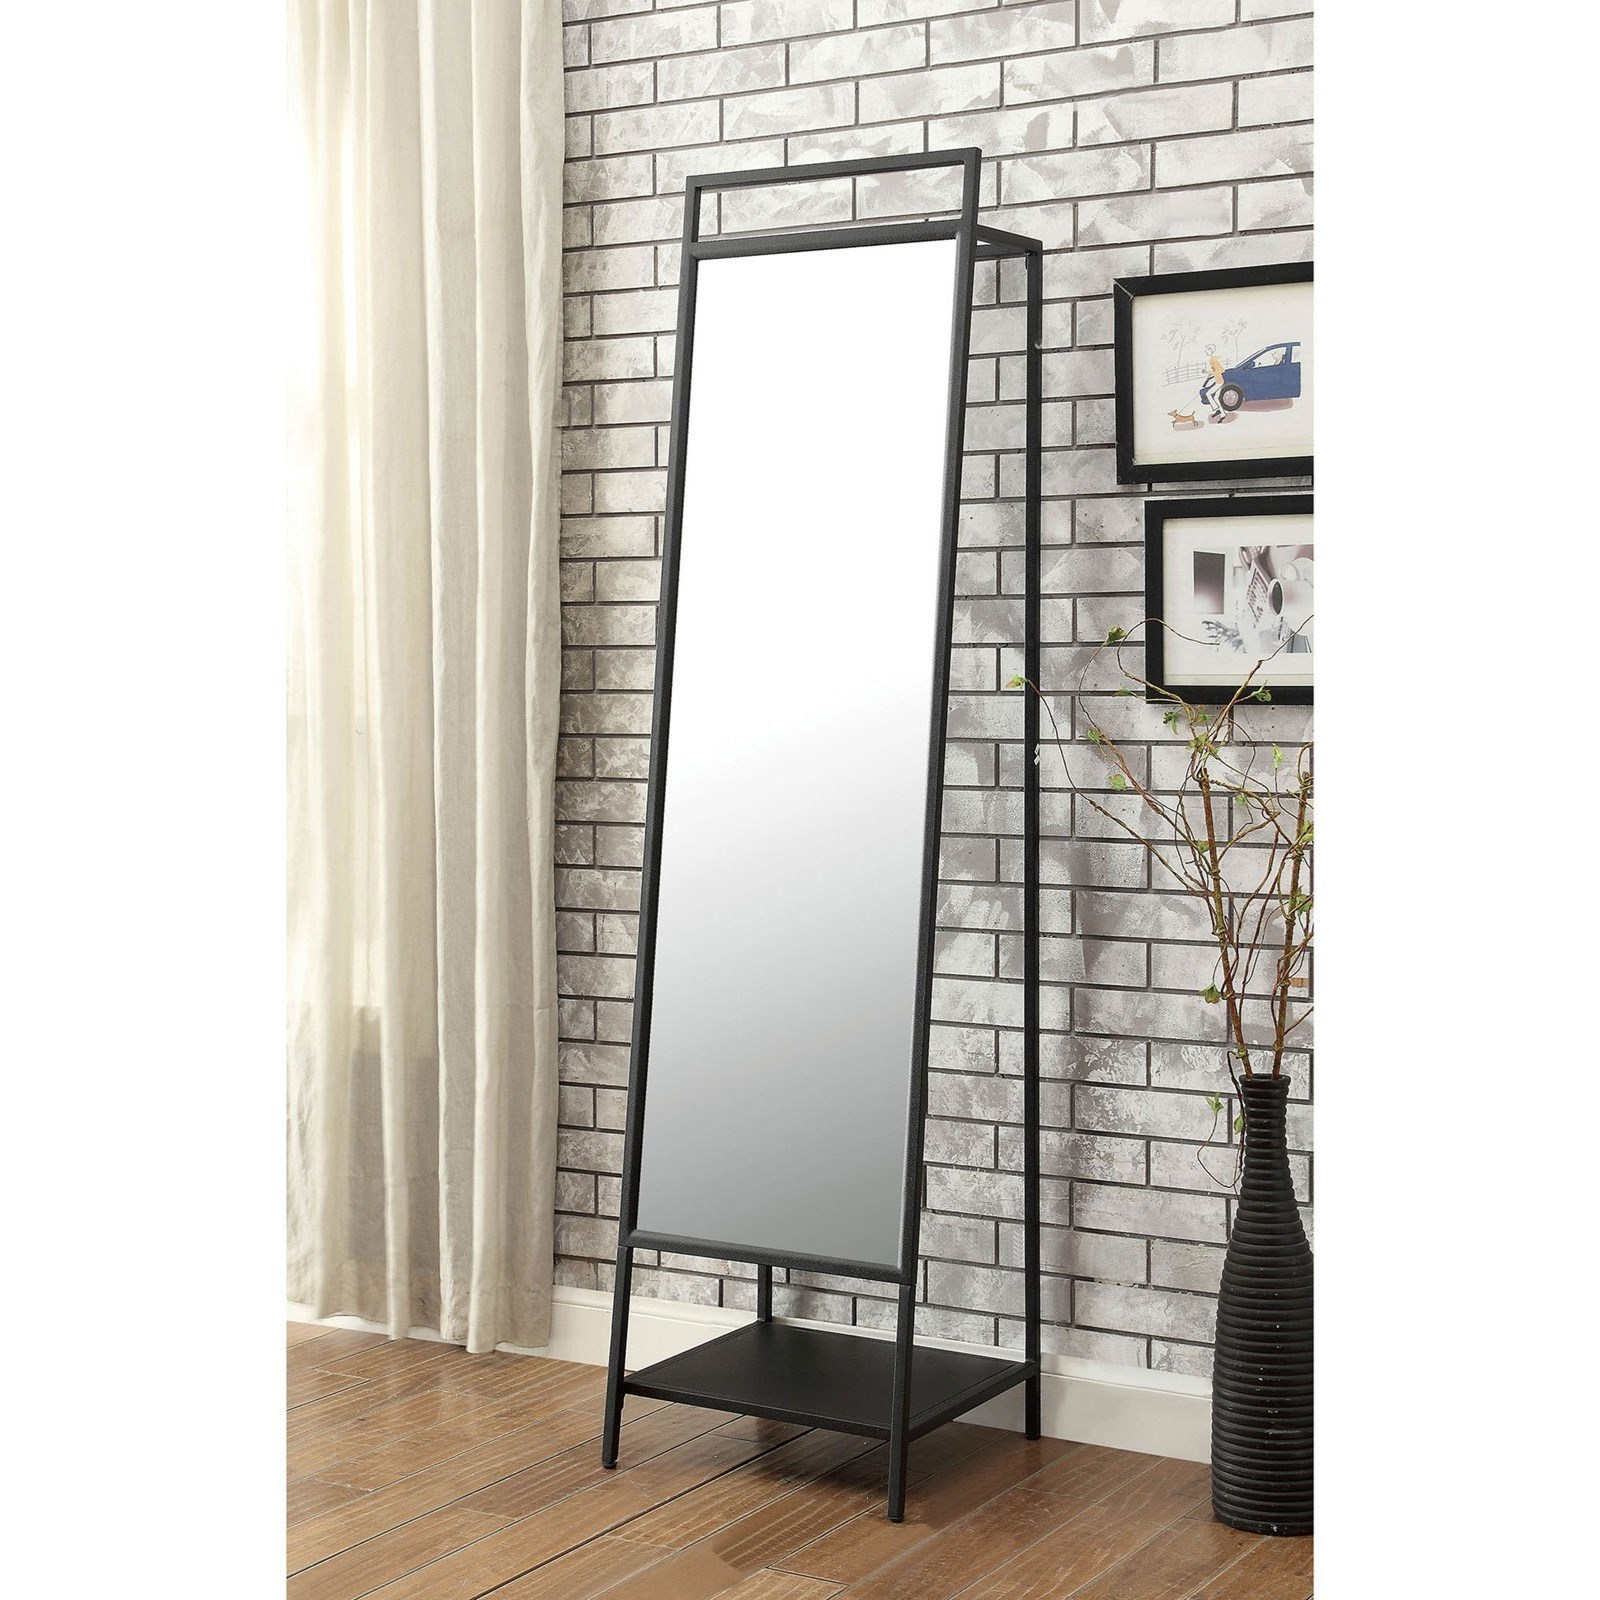 Standing Mirror Venus Contemporary Standing Mirror With Shelf By Furniture Of America At Del Sol Furniture